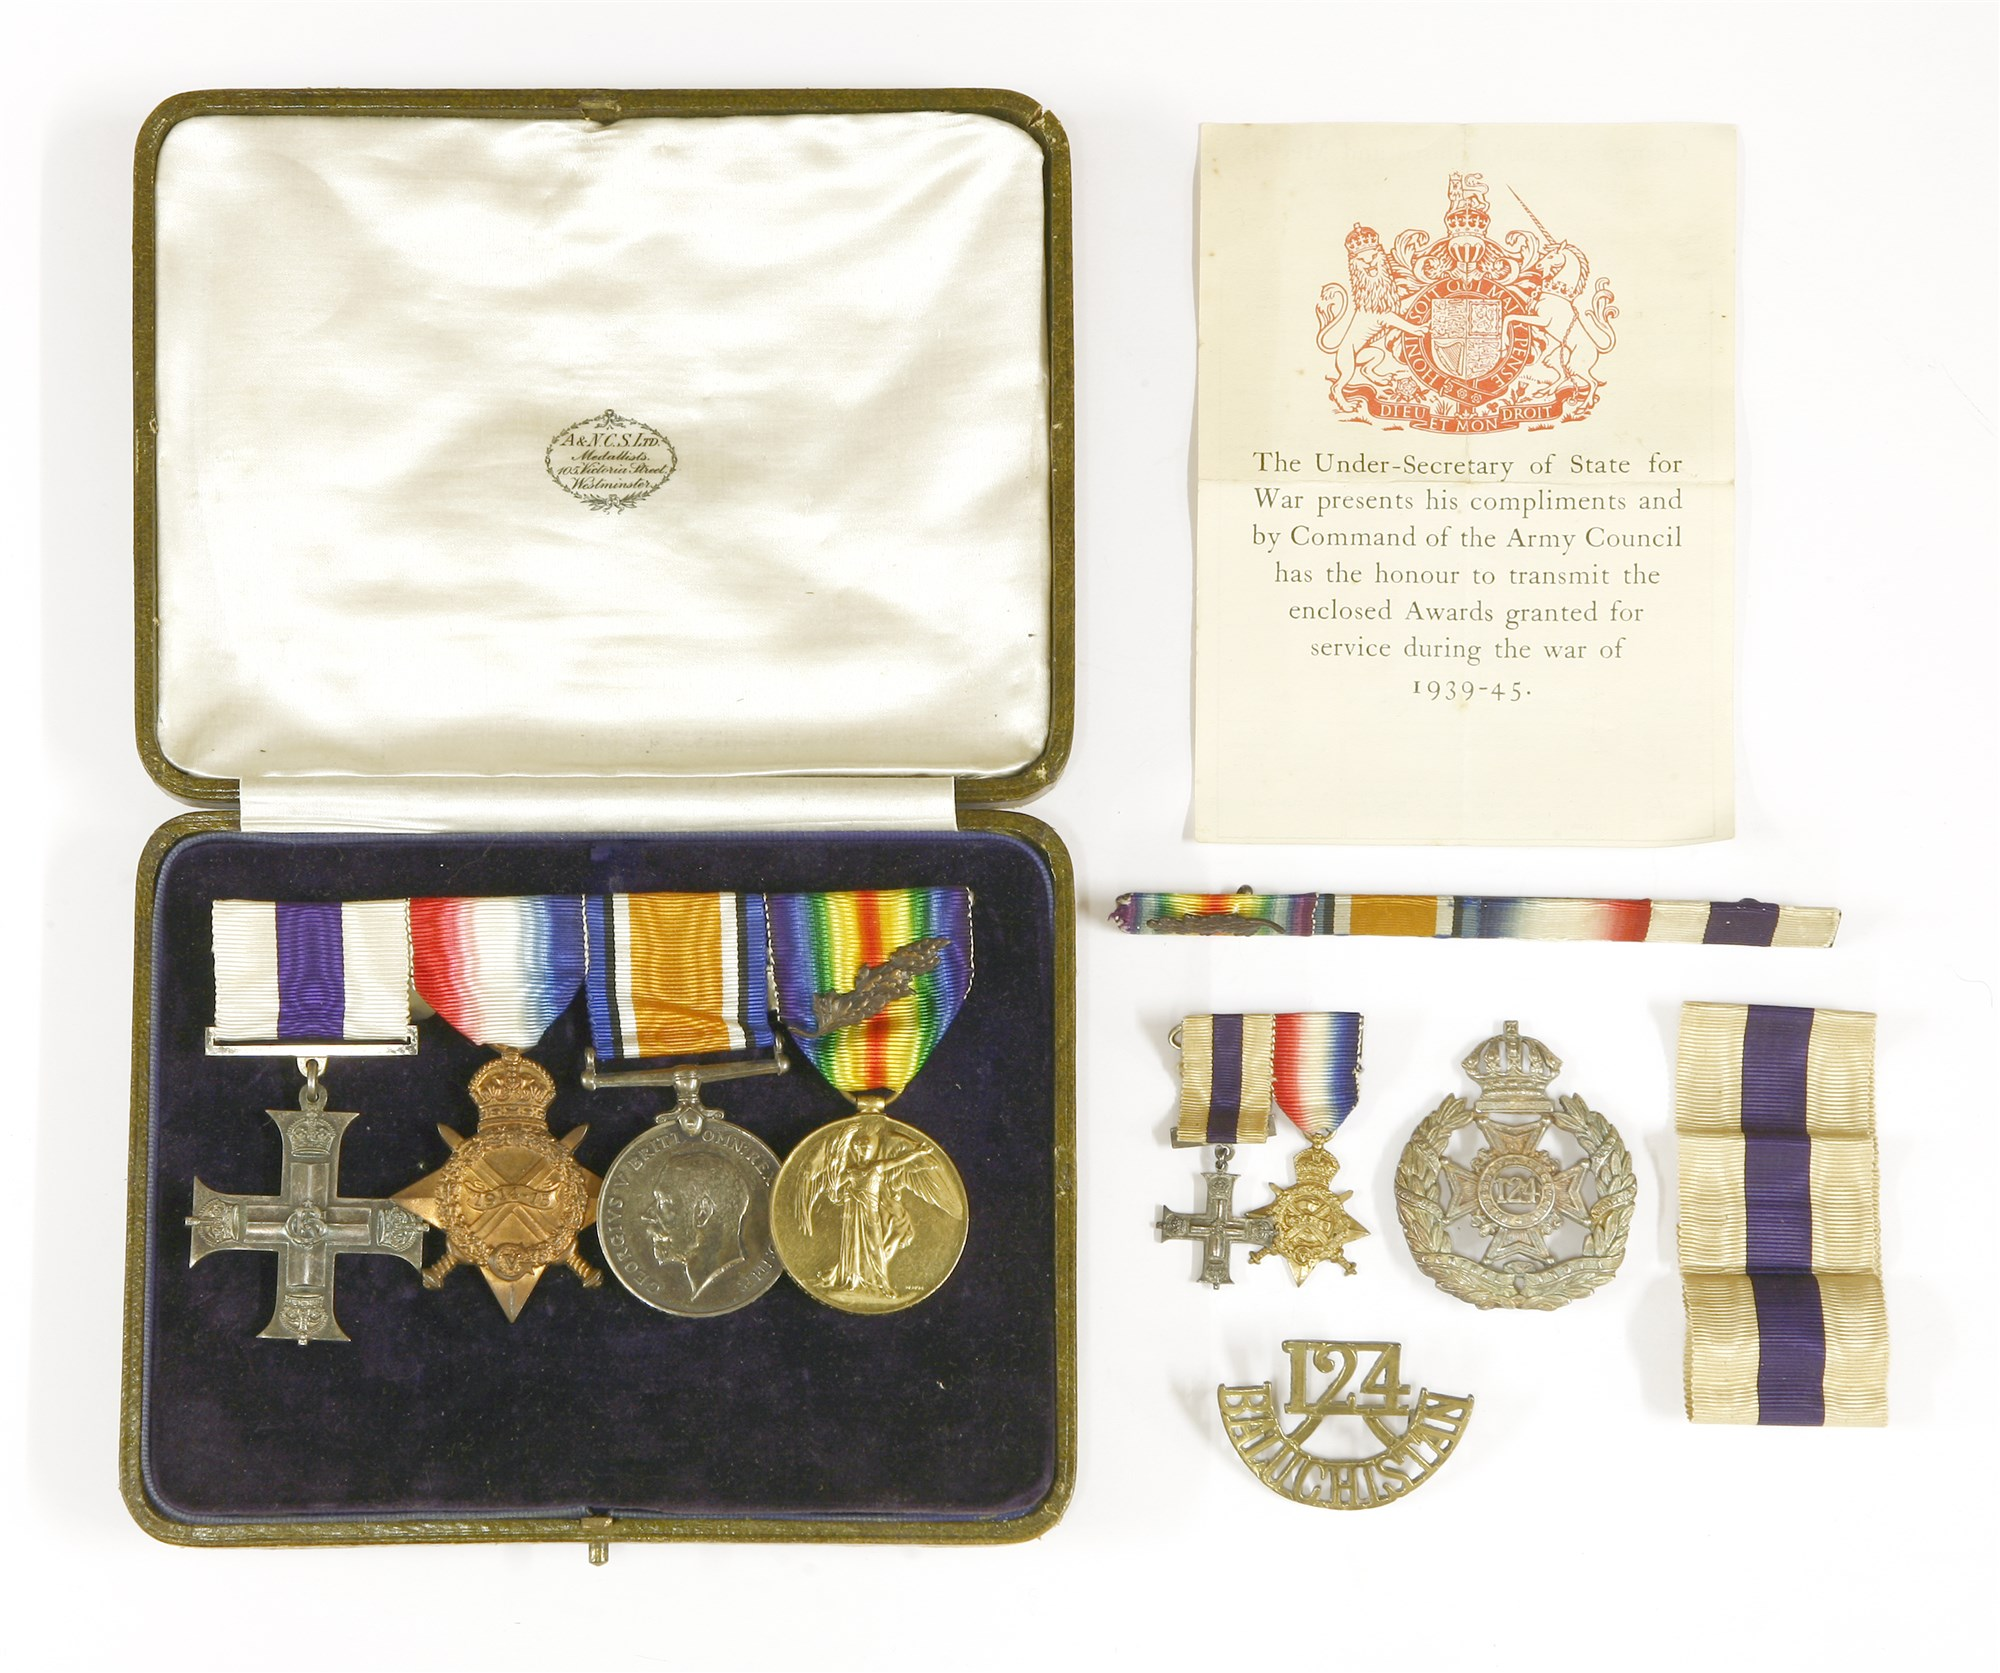 Medals awarded to J A C Kiddle